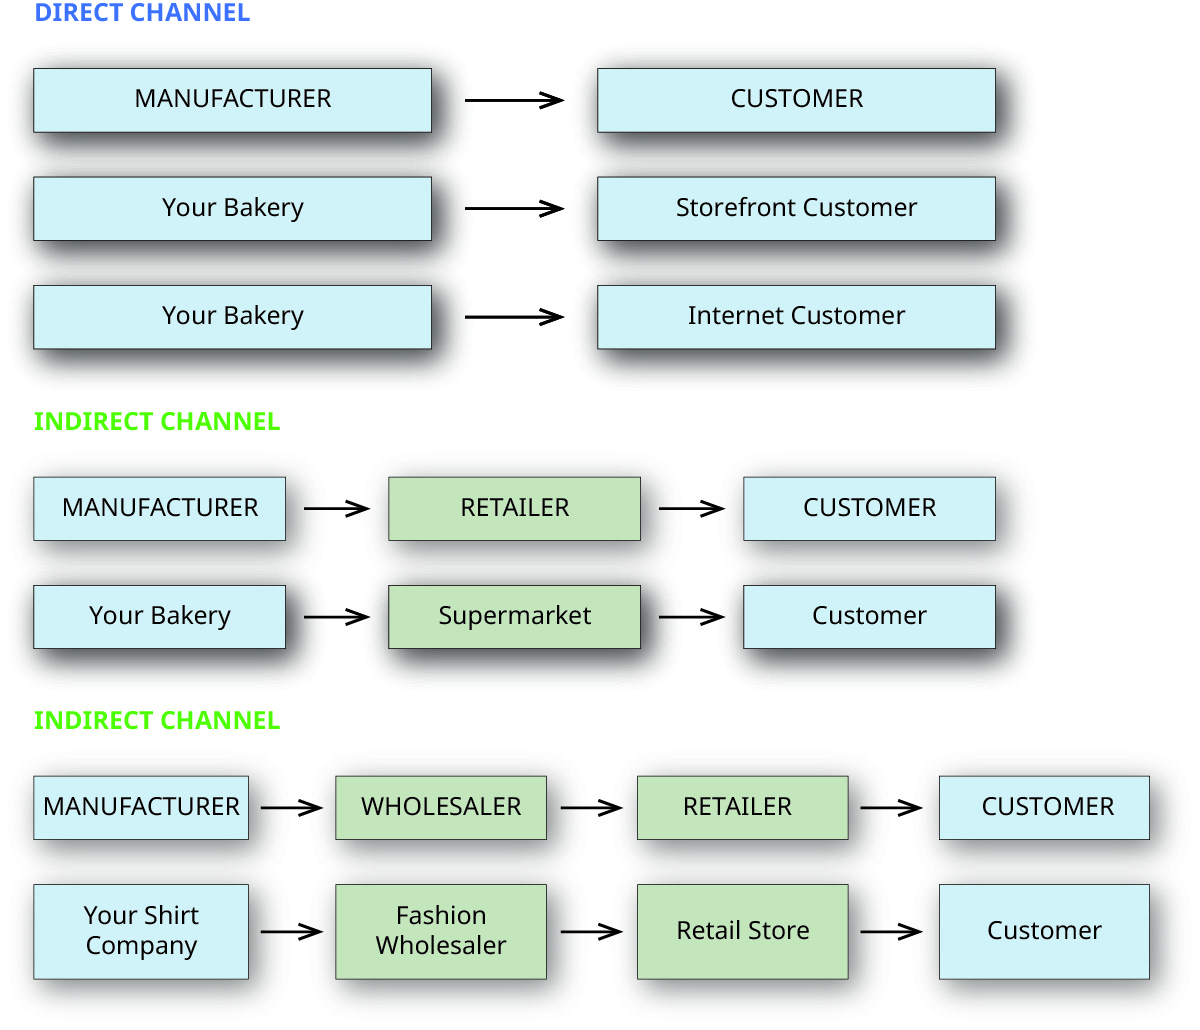 An illustration of a manufacturer (bakery) selling to a customer directly via a storefront or the Internet. The bakery could also sell indirectly using a retailer like a supermarket to the customer. In another example, a manufacturer that is a shirt company can use a fashion wholesaler as an indirect channel of sale, which would supply a retail store with products to sell to the customer.